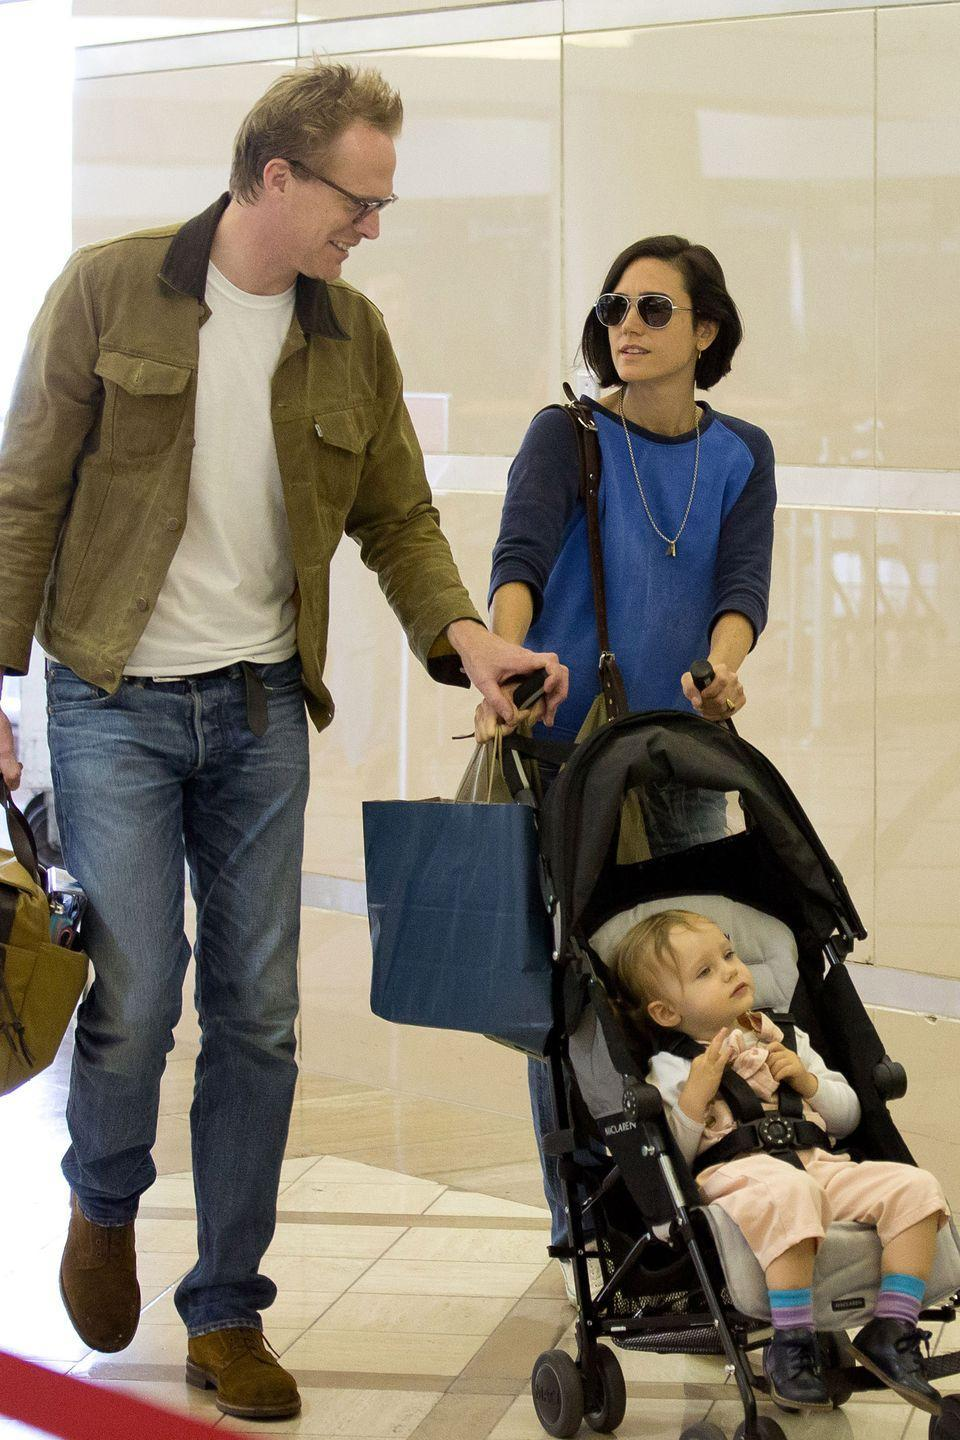 "<p>The actress was 40 years old when she and husband, Paul Bettany, welcomed their third child, daughter Agnes Lark. Connelly told <em><a href=""https://www.allure.com/gallery/jennifer-connelly-style"" rel=""nofollow noopener"" target=""_blank"" data-ylk=""slk:Allure"" class=""link rapid-noclick-resp"">Allure</a> </em>she wanted to be done with pregnancies after Agnes, ""I knew that we were going to be done after number three,"" she told <em>Allure</em> in February 2014. ""That's enough for us.""</p>"